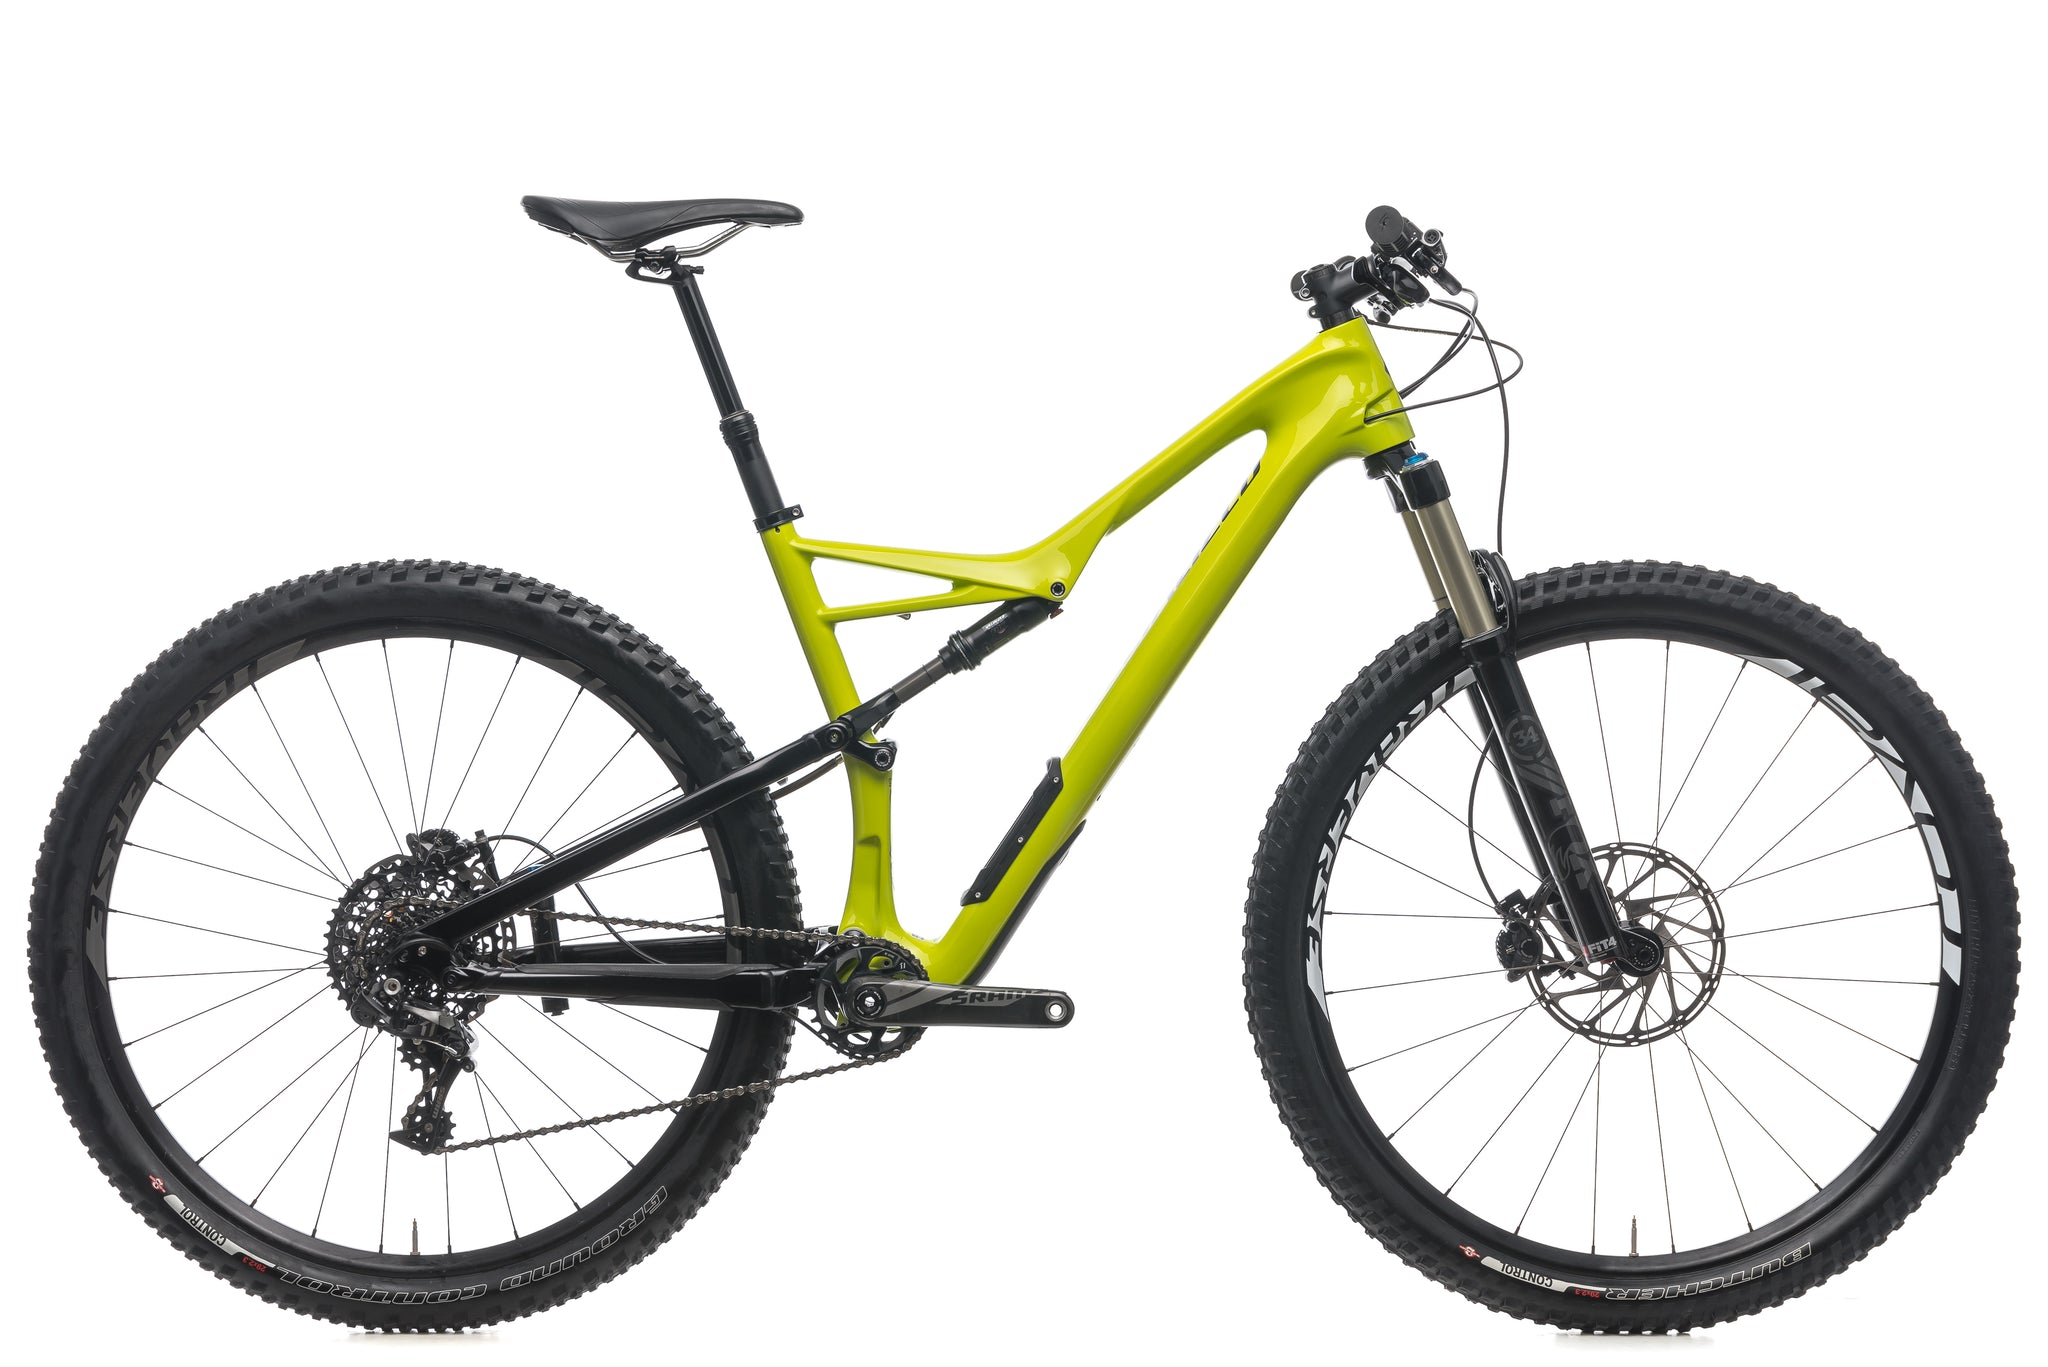 Specialized Camber Expert Carbon 29 Large Bike - 2016 drive side